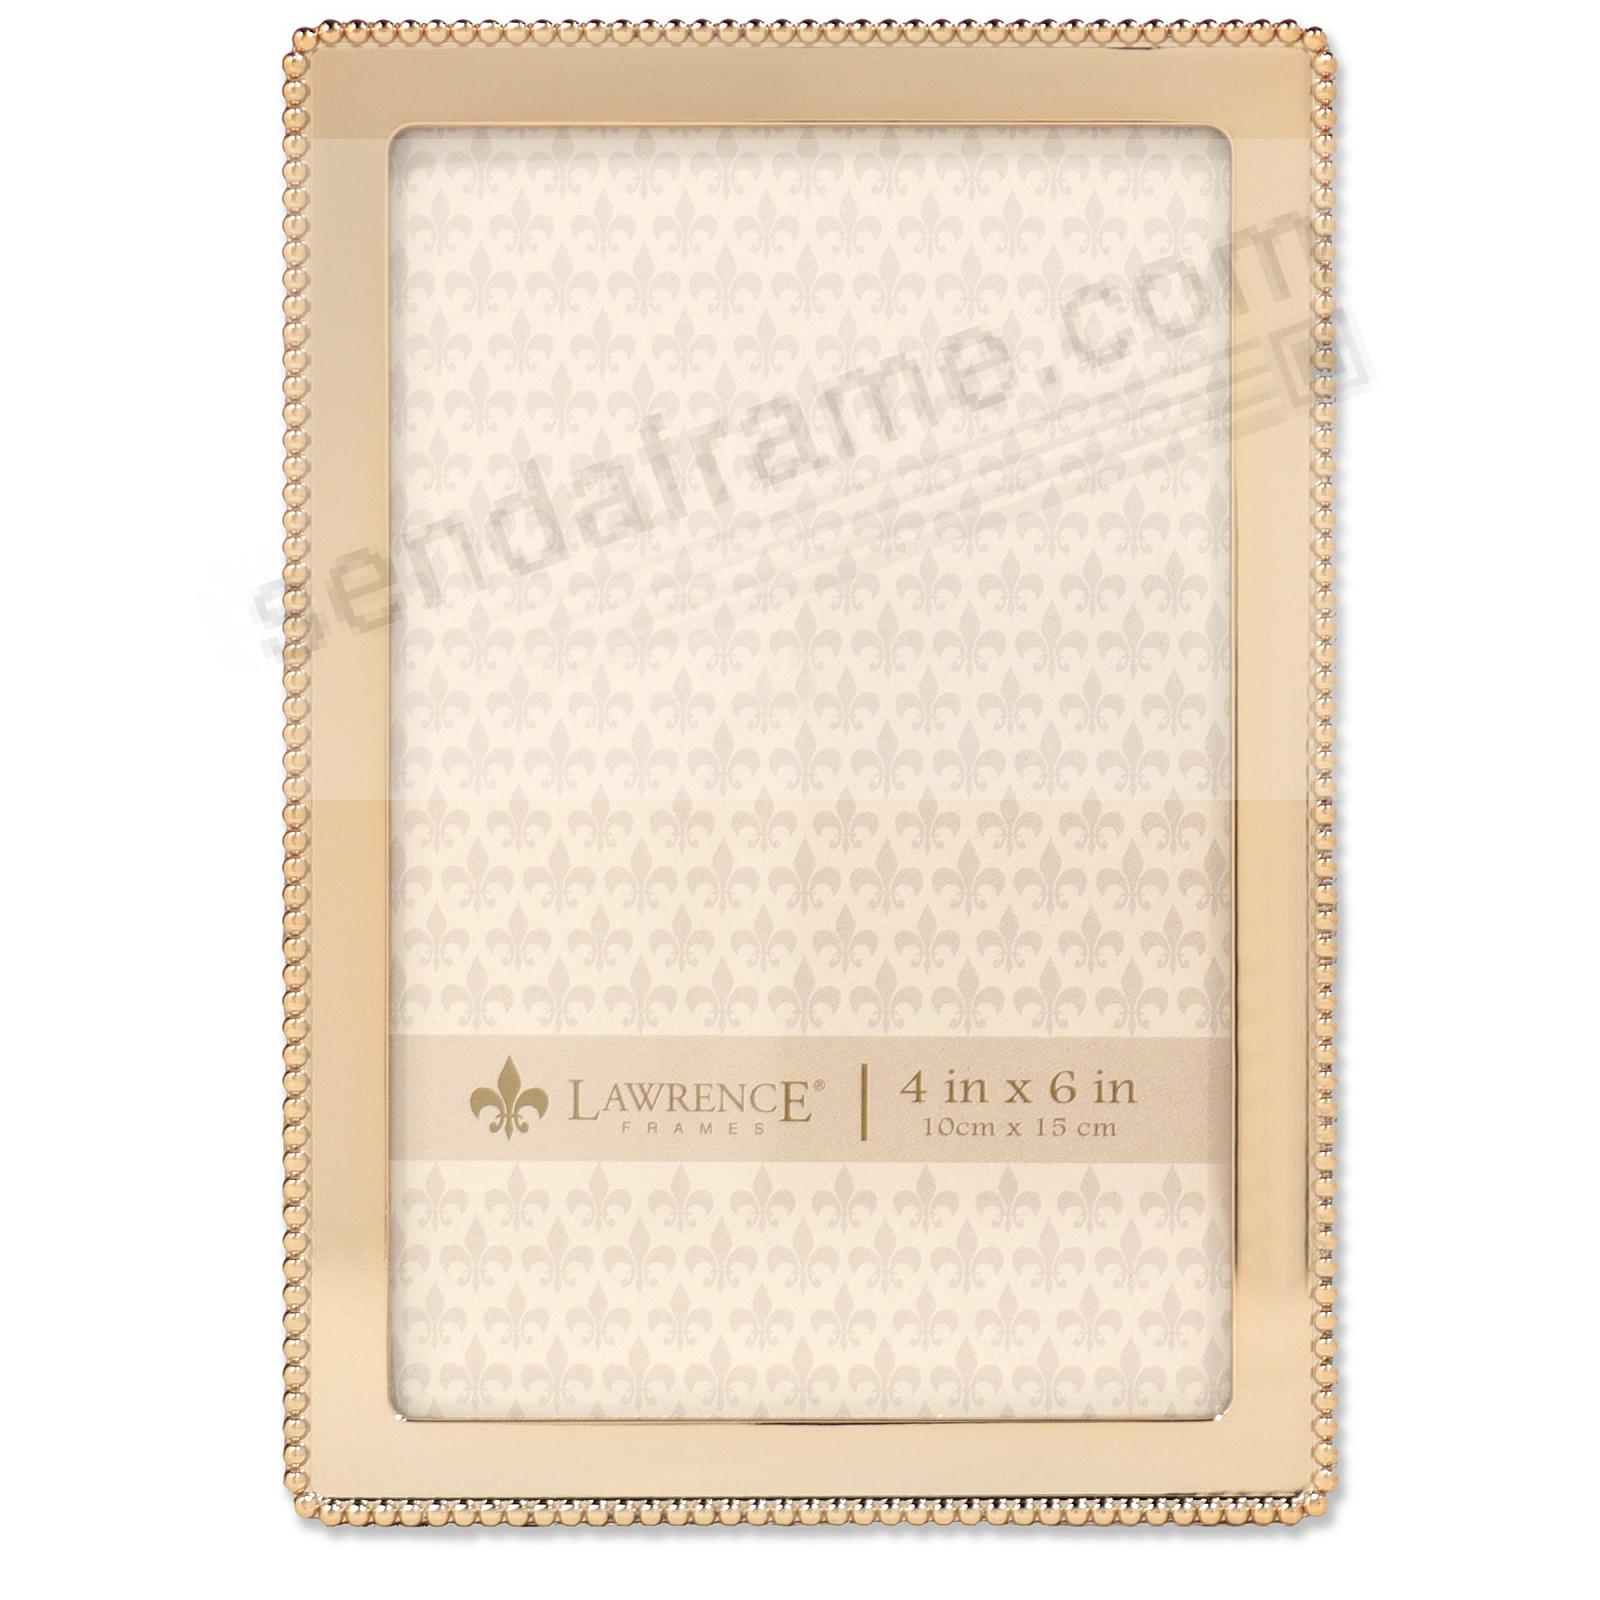 Bead Border Gold finish 4x6 frame by Lawrence®